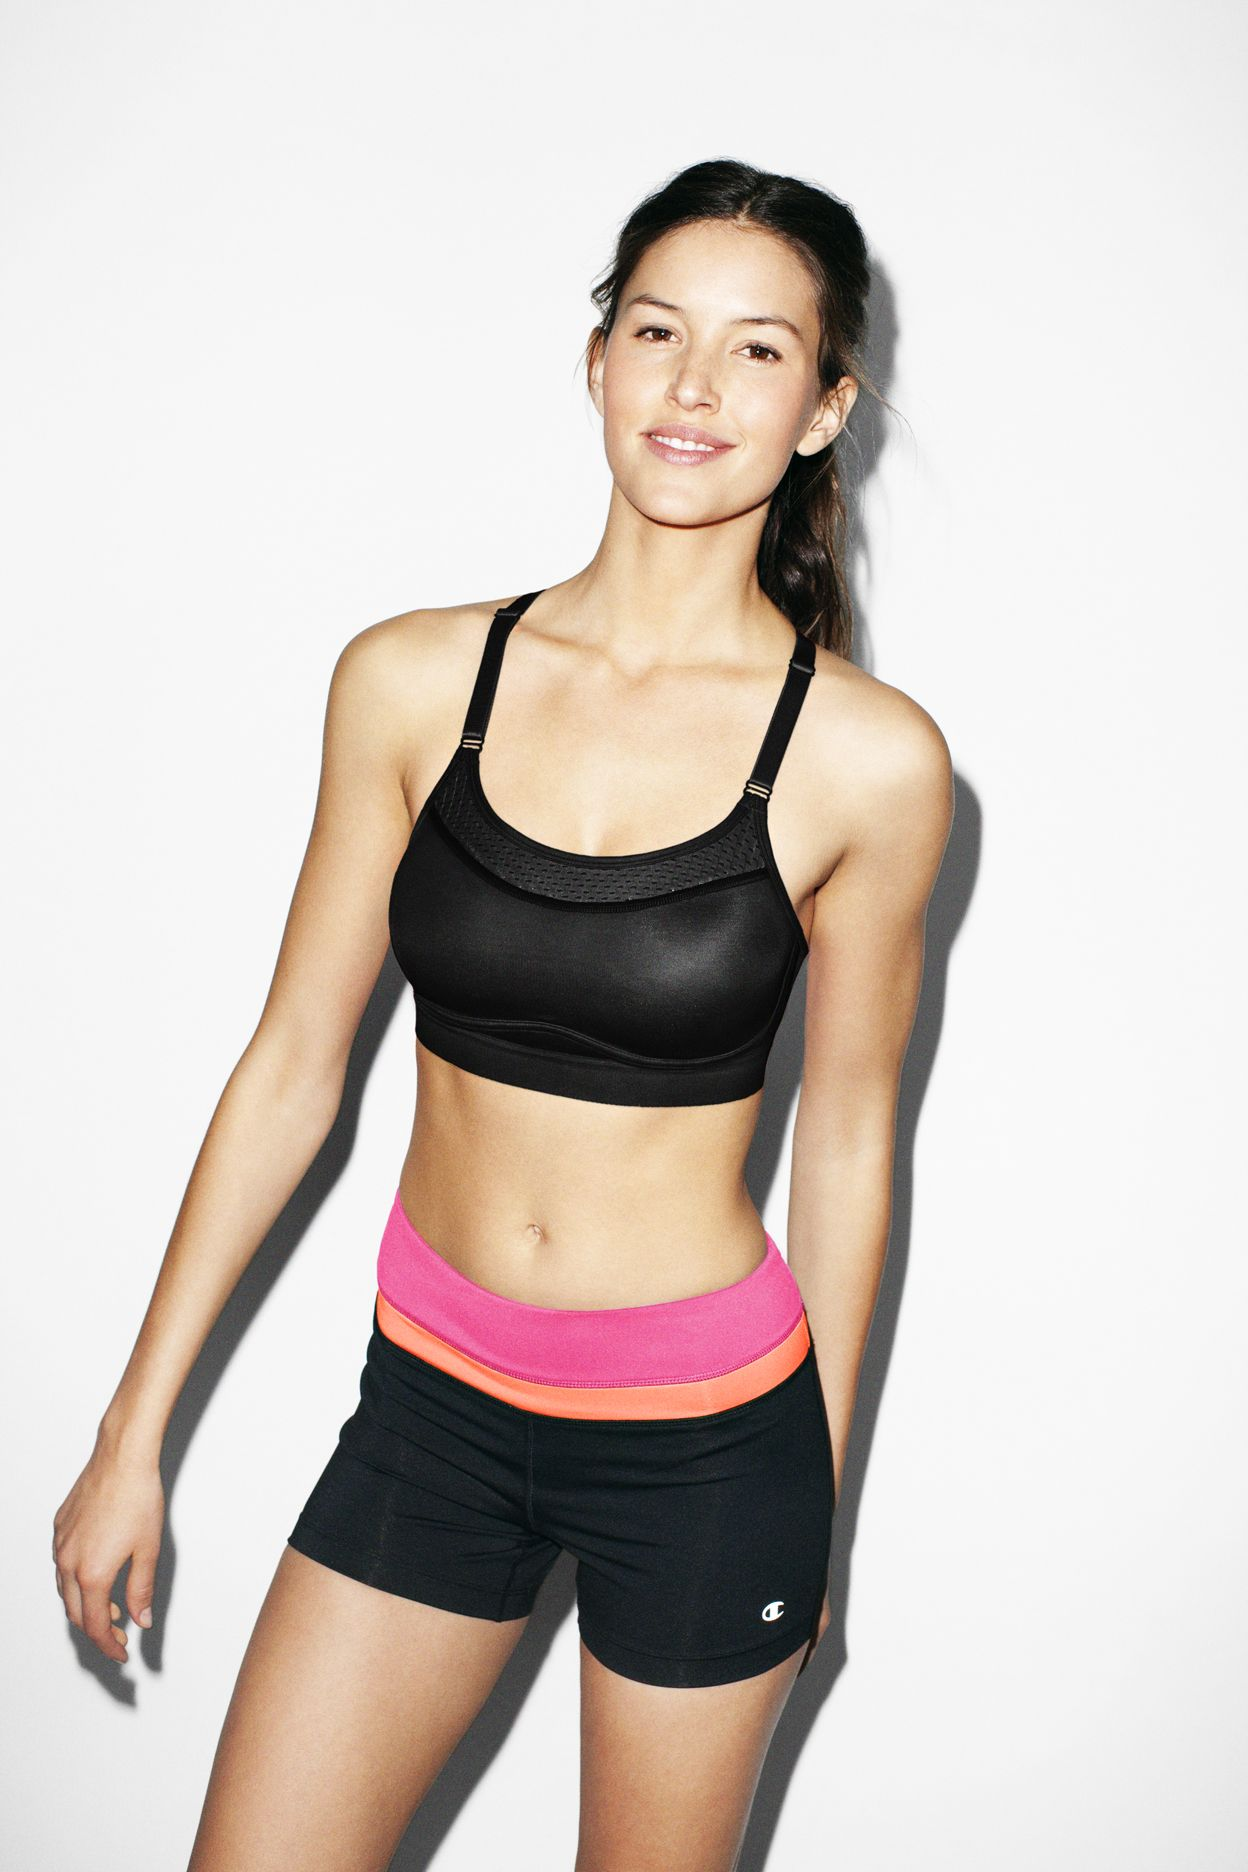 The Show-Off Sports Bra from Champion with new sleek, concealing technology. #ChampionSportsBras